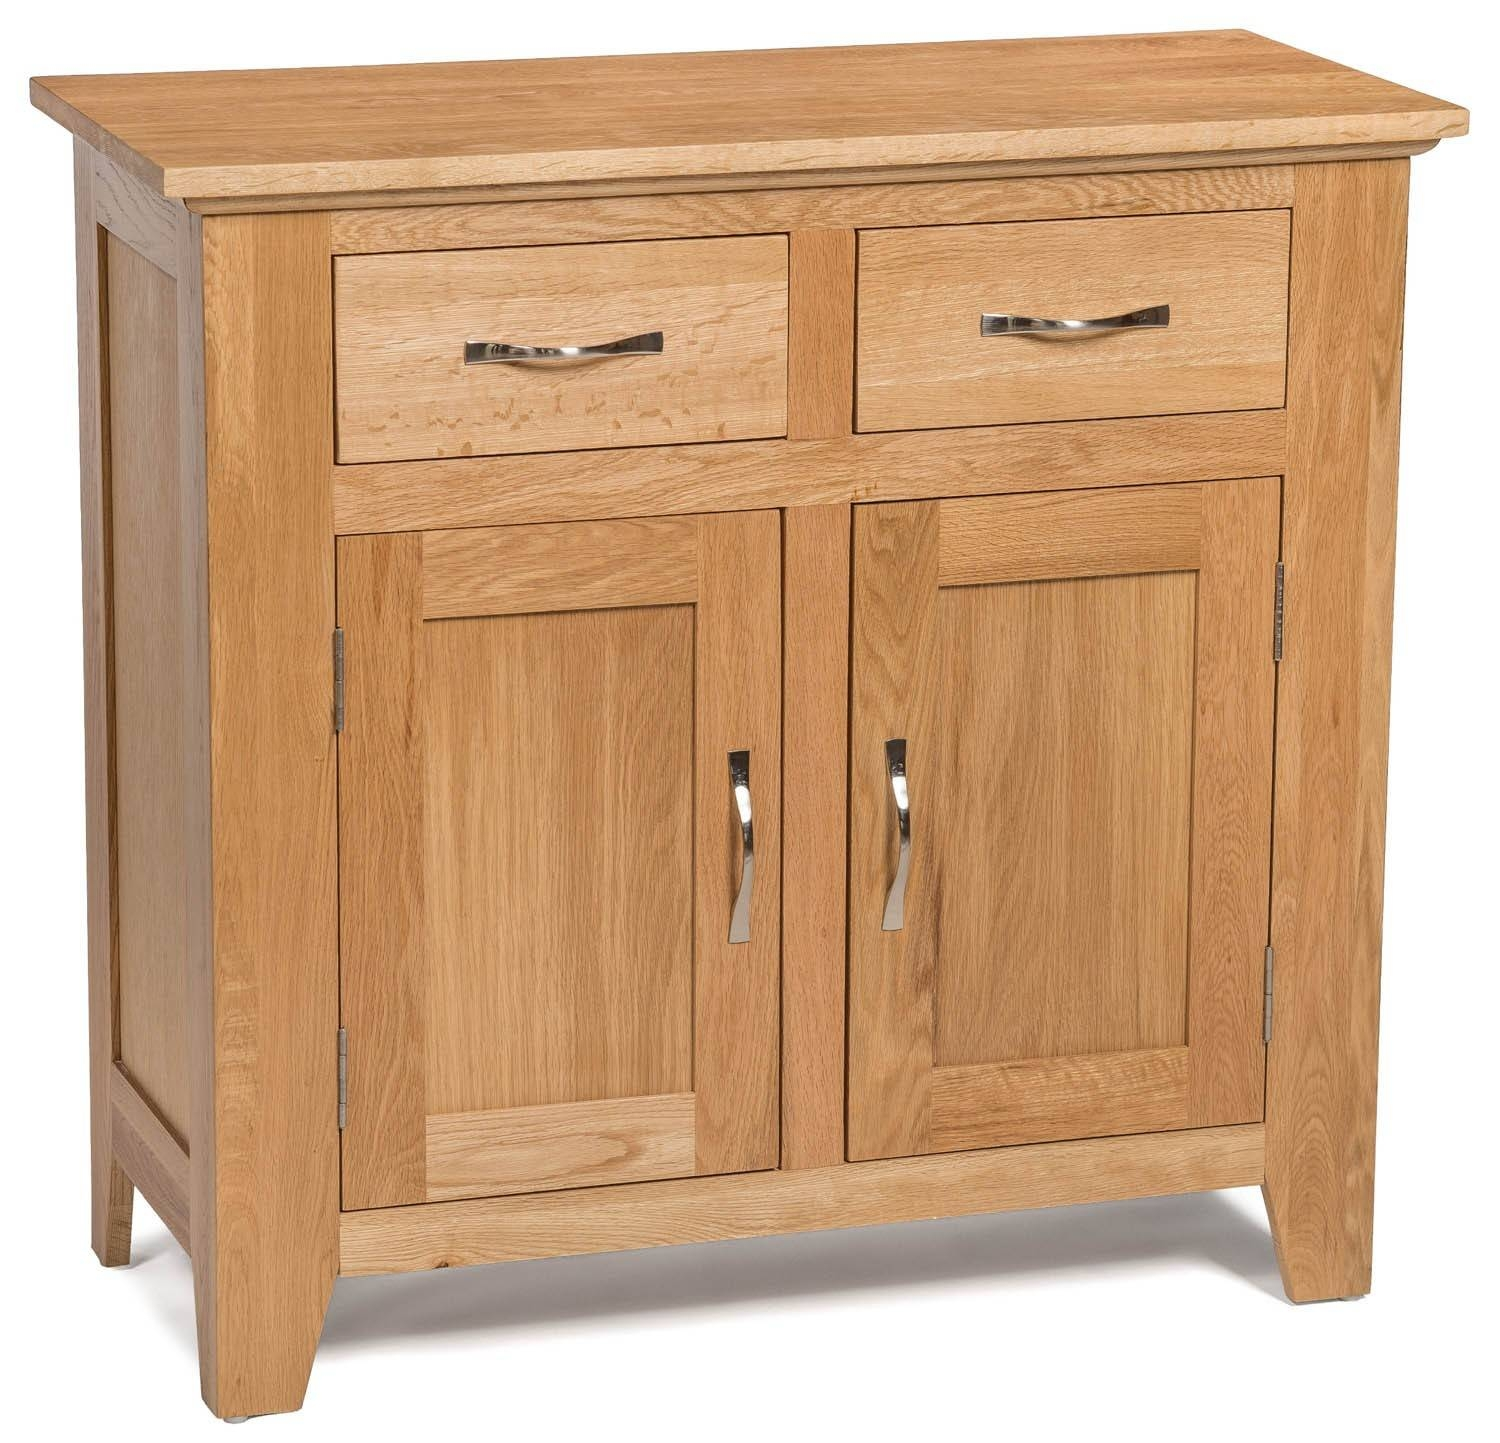 Camberley Oak Small 2 Door 2 Drawer Sideboard – Sideboards & Tops Intended For Recent Sideboards With Drawers (#6 of 15)